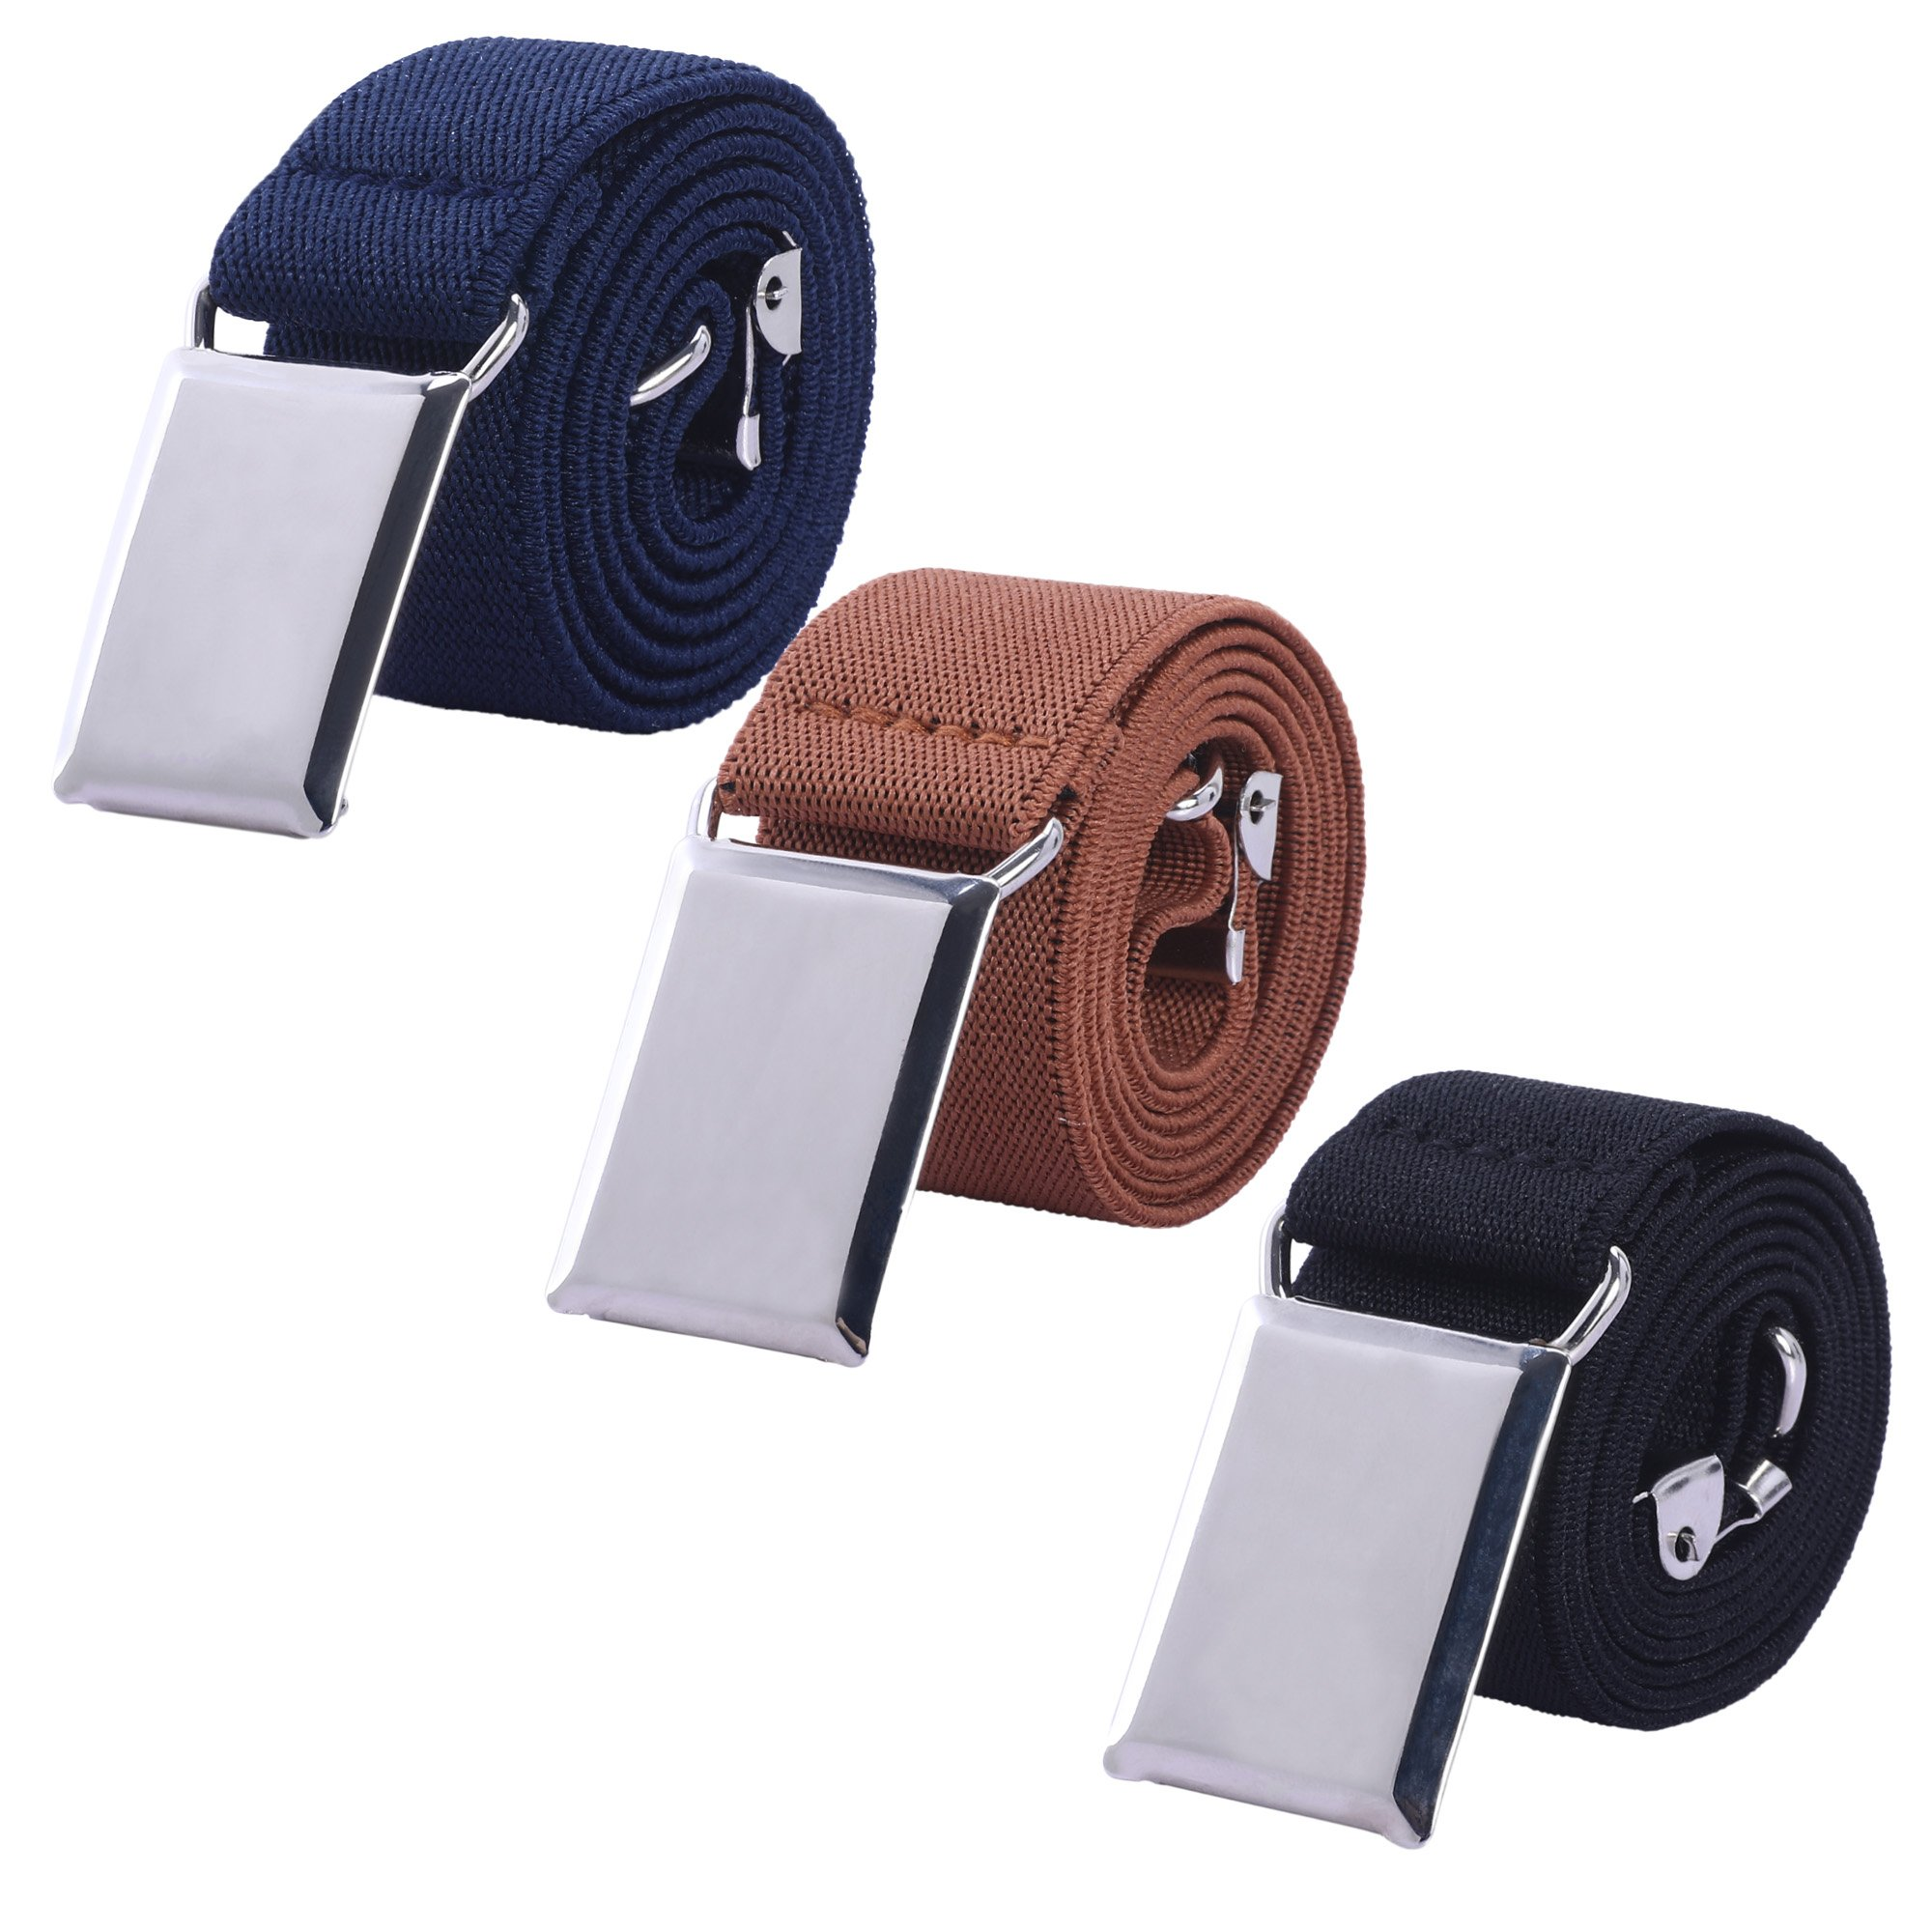 Toddler Boy Kids Buckle Belt - Adjustable Elastic Child Silver Buckle Belts for Girls, 3 Pieces (Navy blue/Brown / Black)